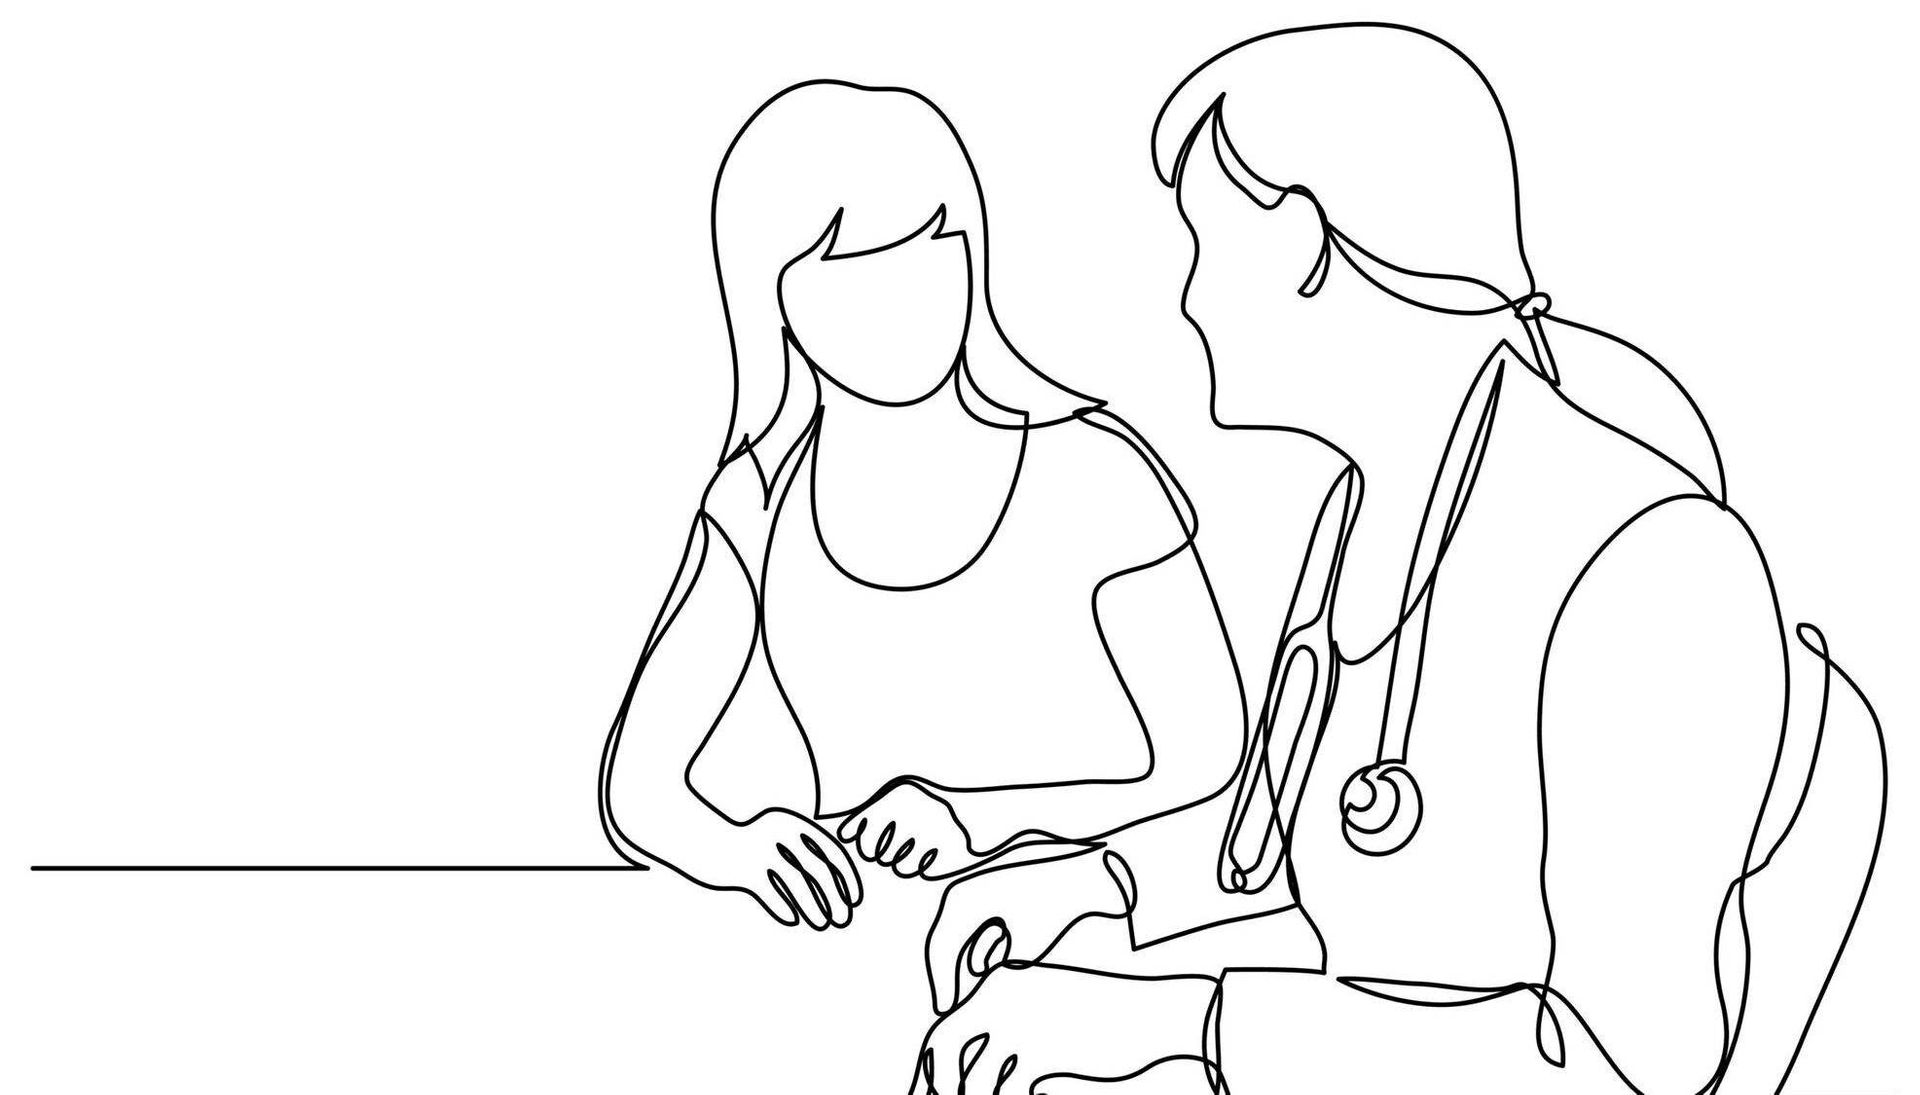 Line illustration of a female doctor speaking with a female patient, sitting at a table